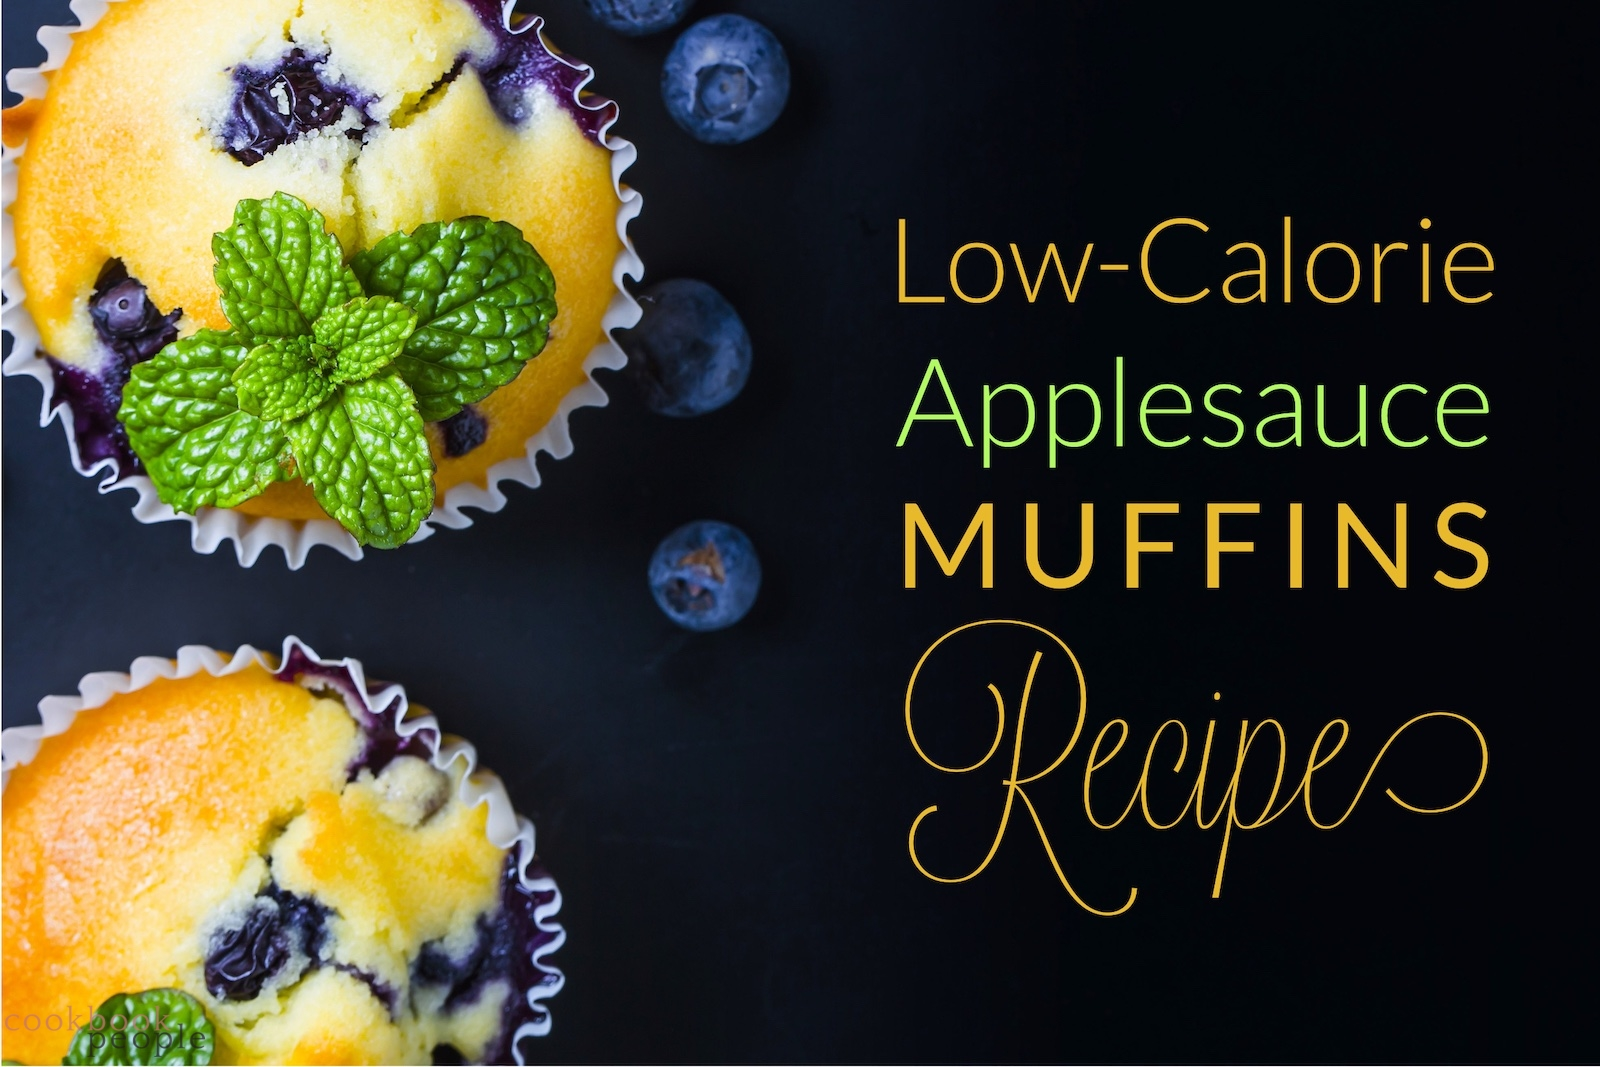 Blueberry muffins with mint sprig and text: Low-Calorie Applesauce Muffins Recipe